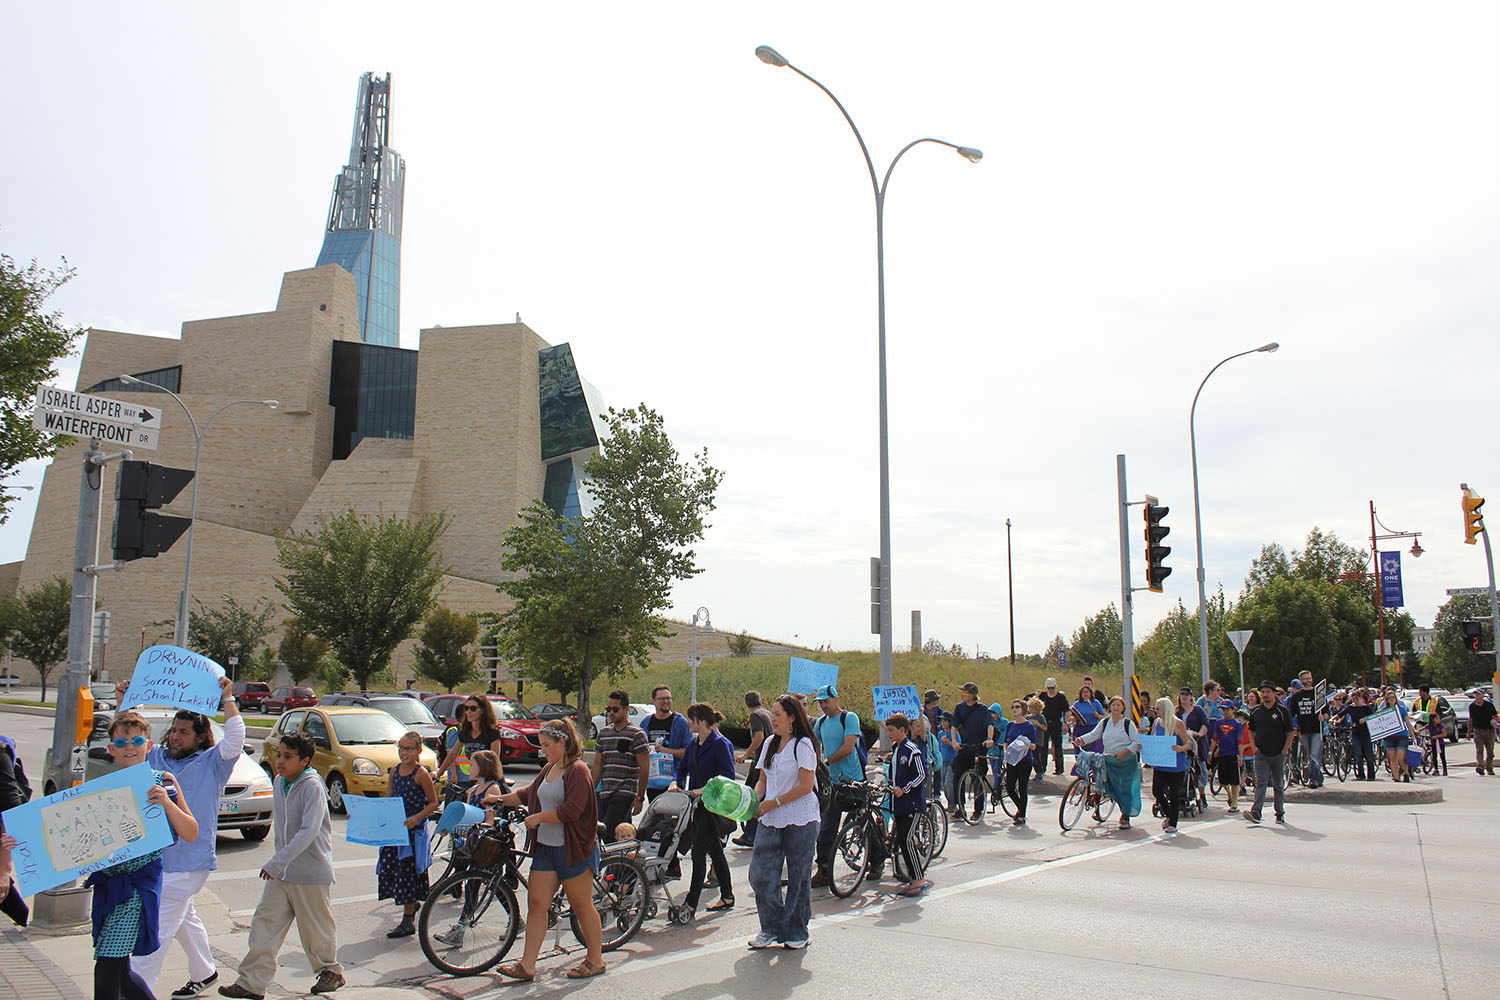 Winnipeggers marching in support of Shoal Lake and Freedom Road in front of the Canadian Museum of Human Rights, whose water comes from Shoal Lake.